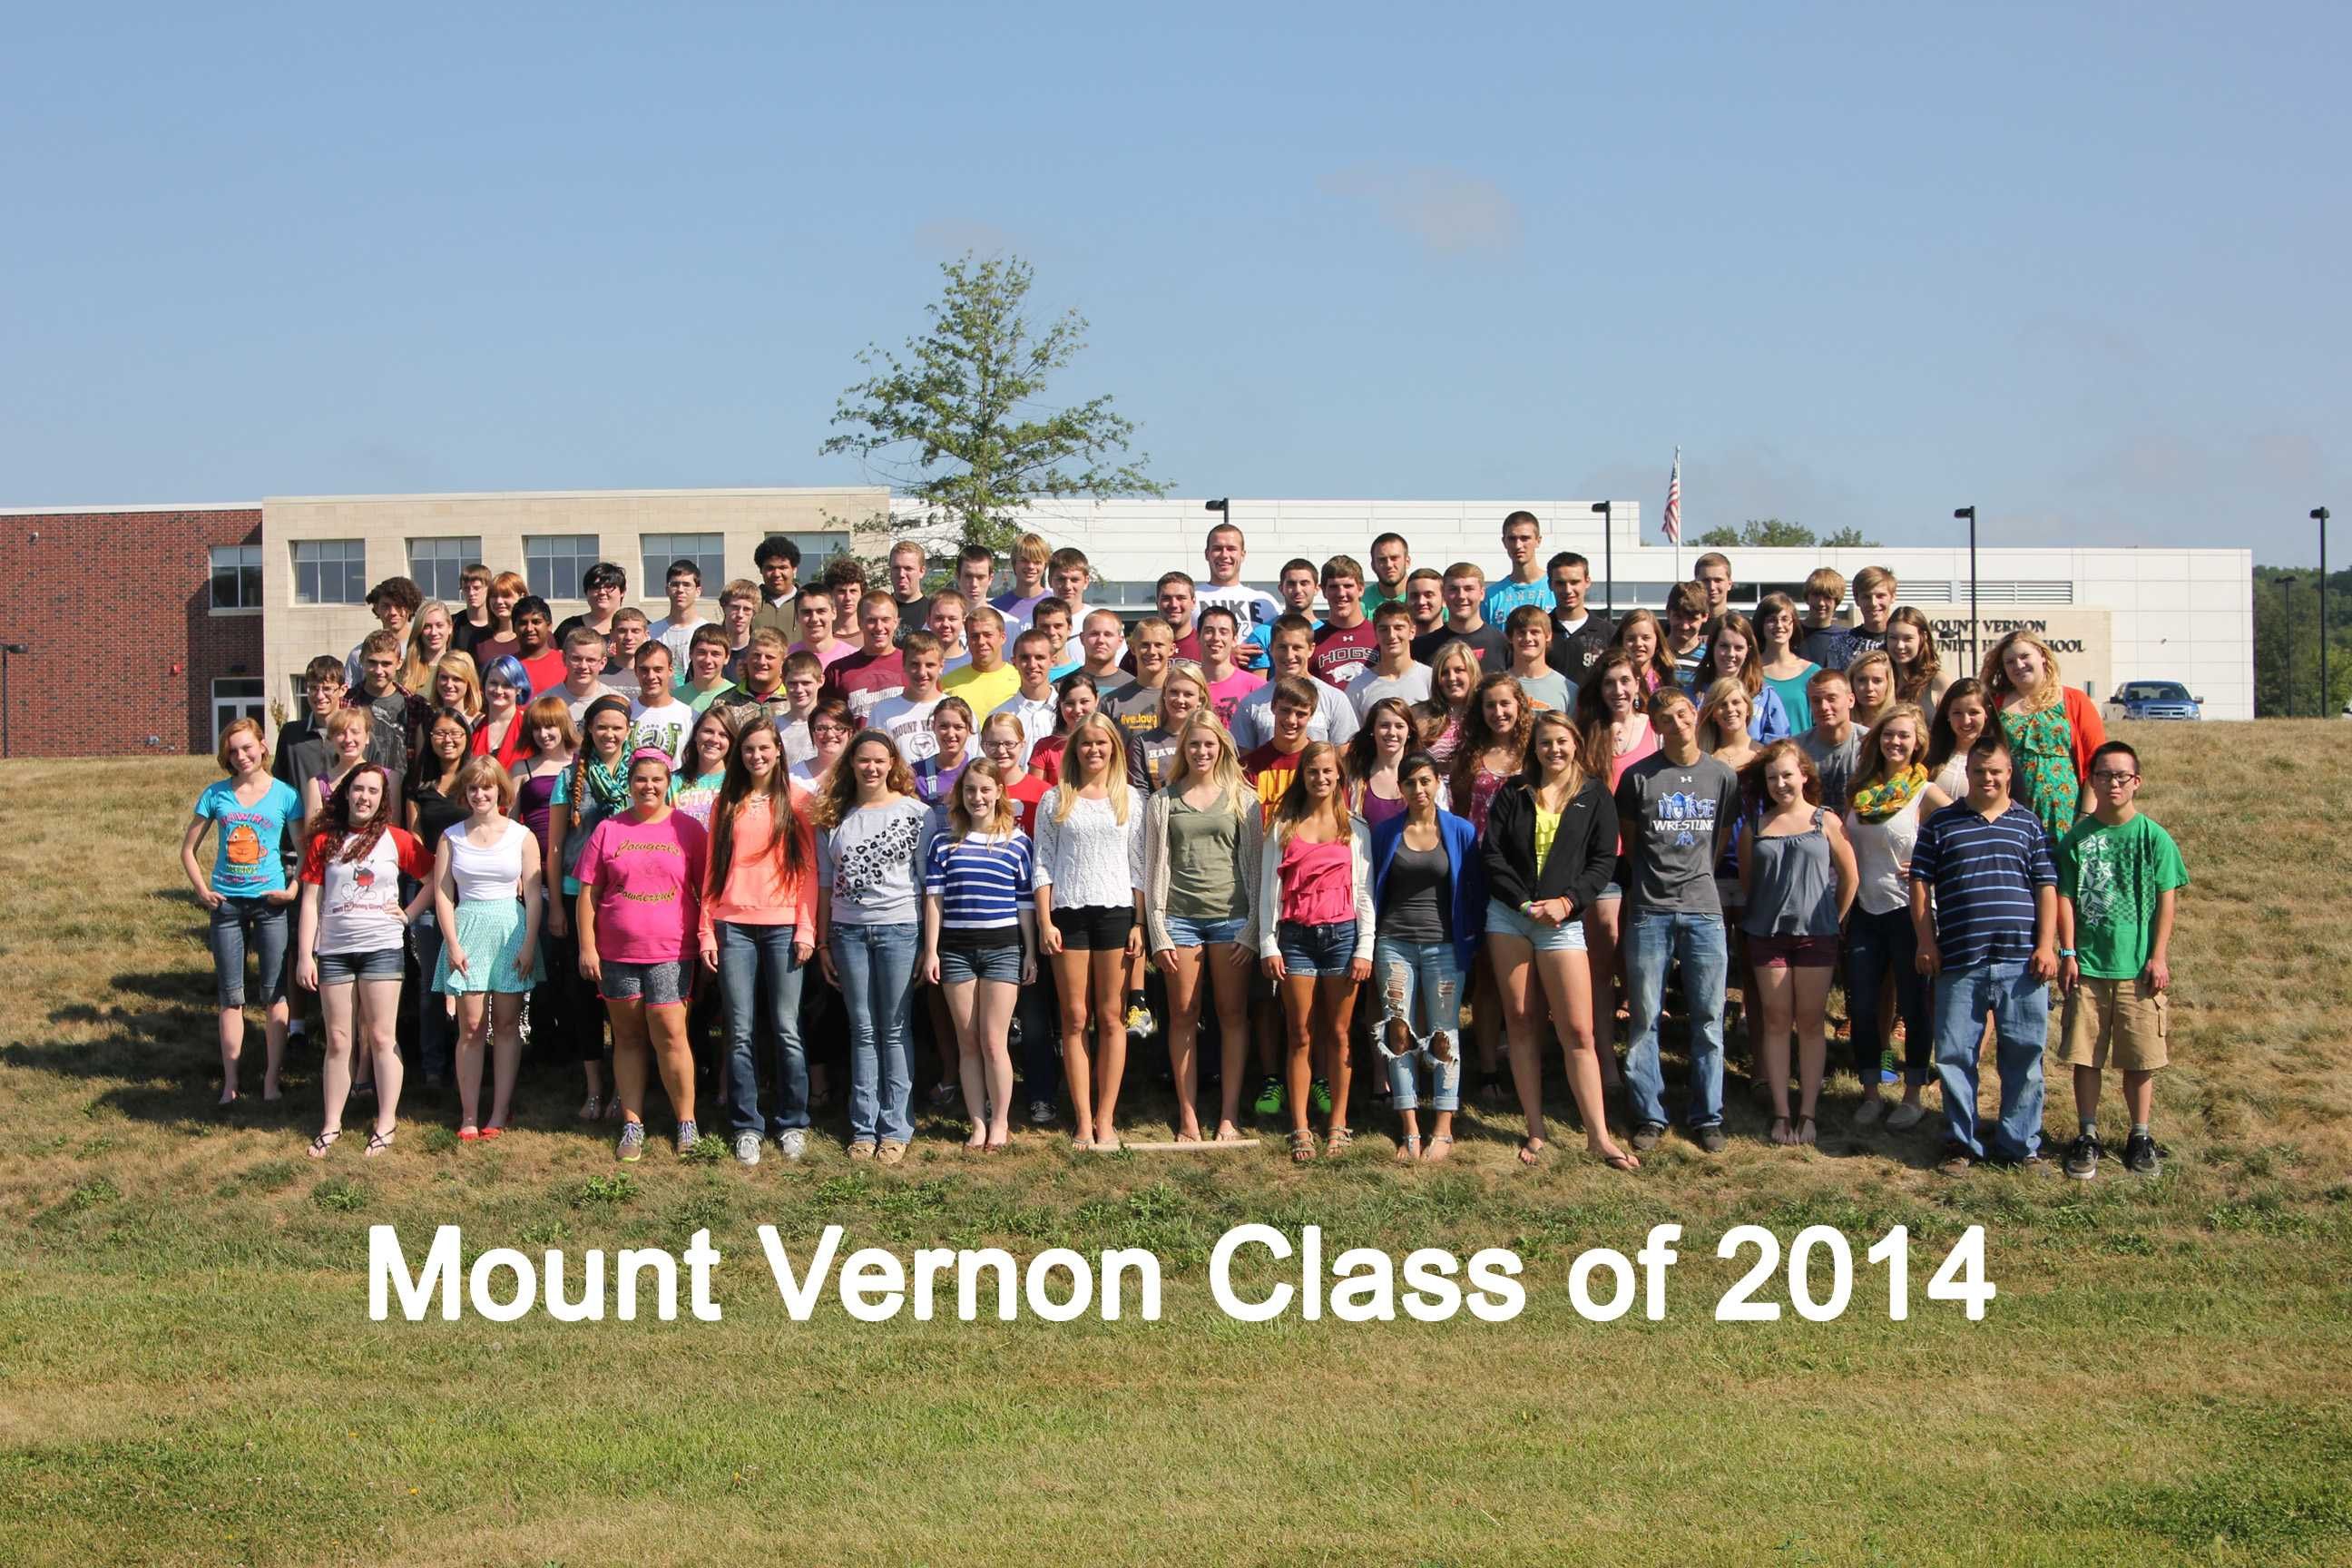 Mount Vernon High School seniors pose in front of the school on August 23.